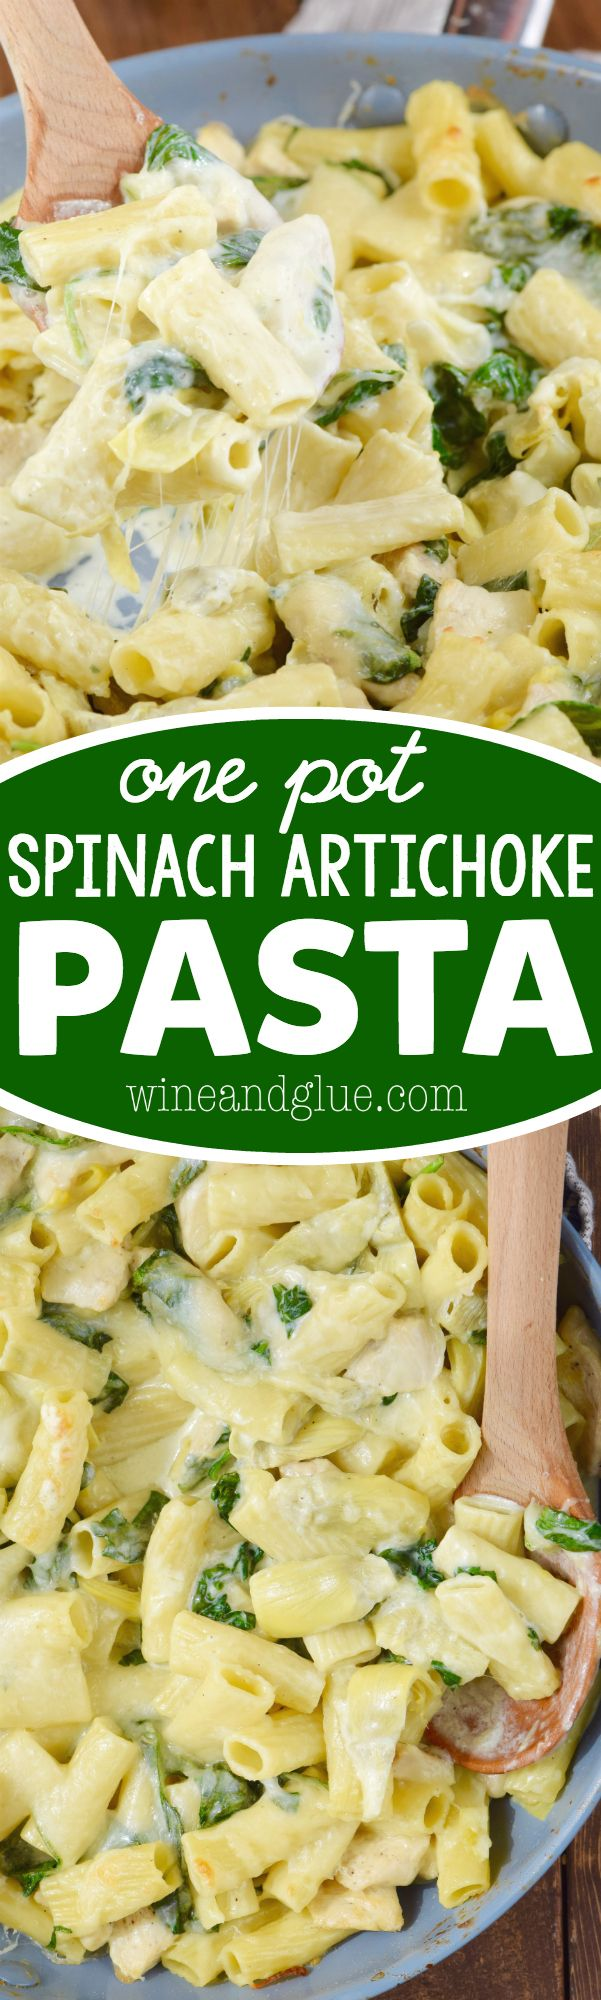 This One Pot Spinach Artichoke Pasta is super easy to throw together and full…